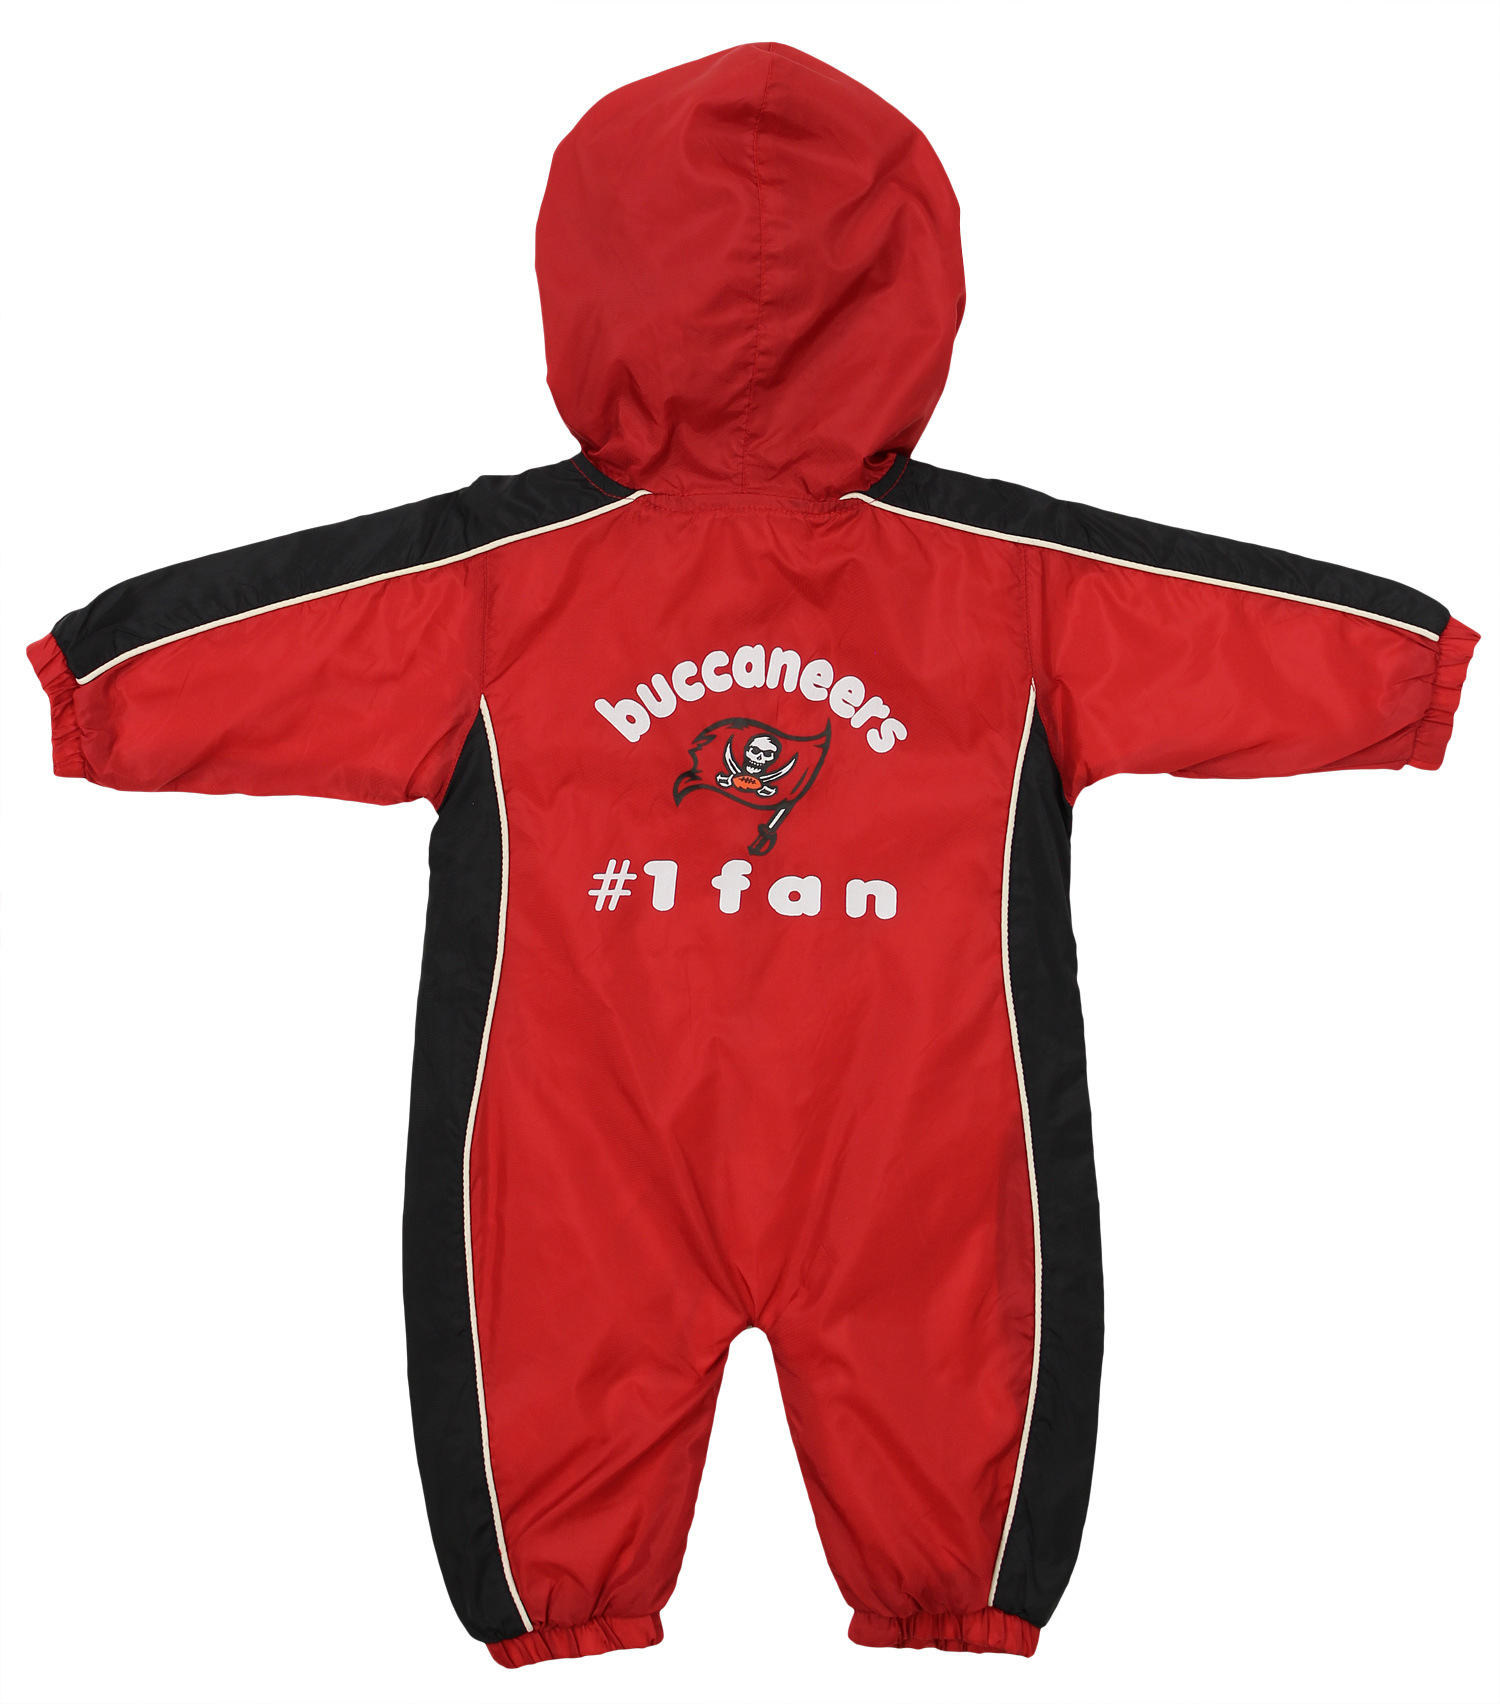 317ed769 Details about Tampa Bay Buccaneers NFL Baby Boys Newborn Infant Hooded Wind  Coveralls, Red